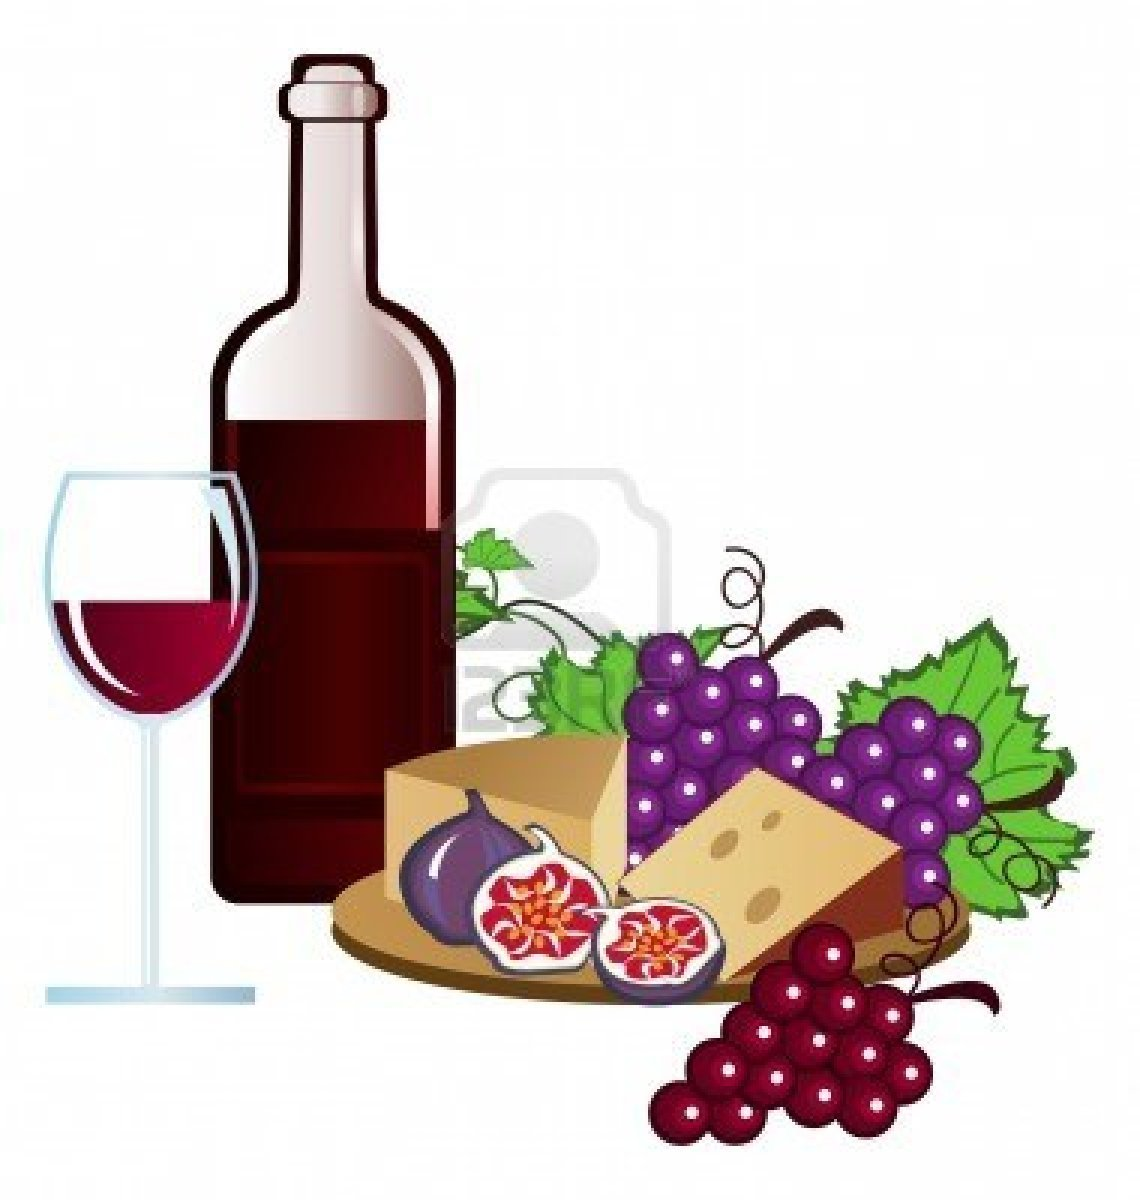 Food and wine clipart 2 » Clipart Portal.